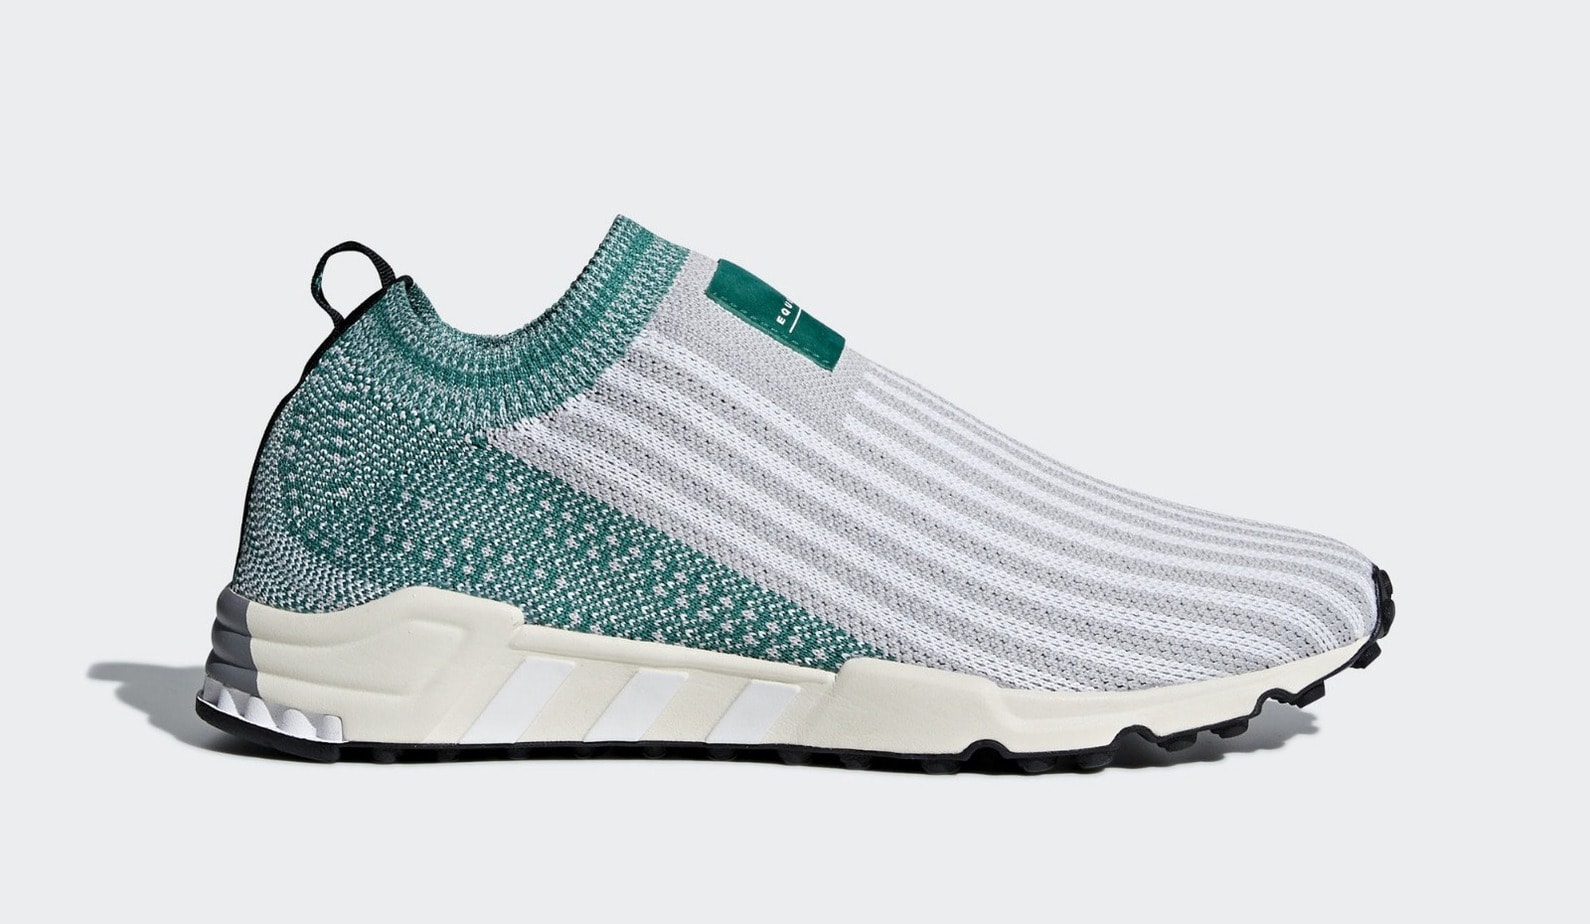 b1281f6462ad adidas EQT Support SK Primeknit Release Date  Coming Soon Color  Grey  Two FTWR White Sub Green Style Code  AQ1032